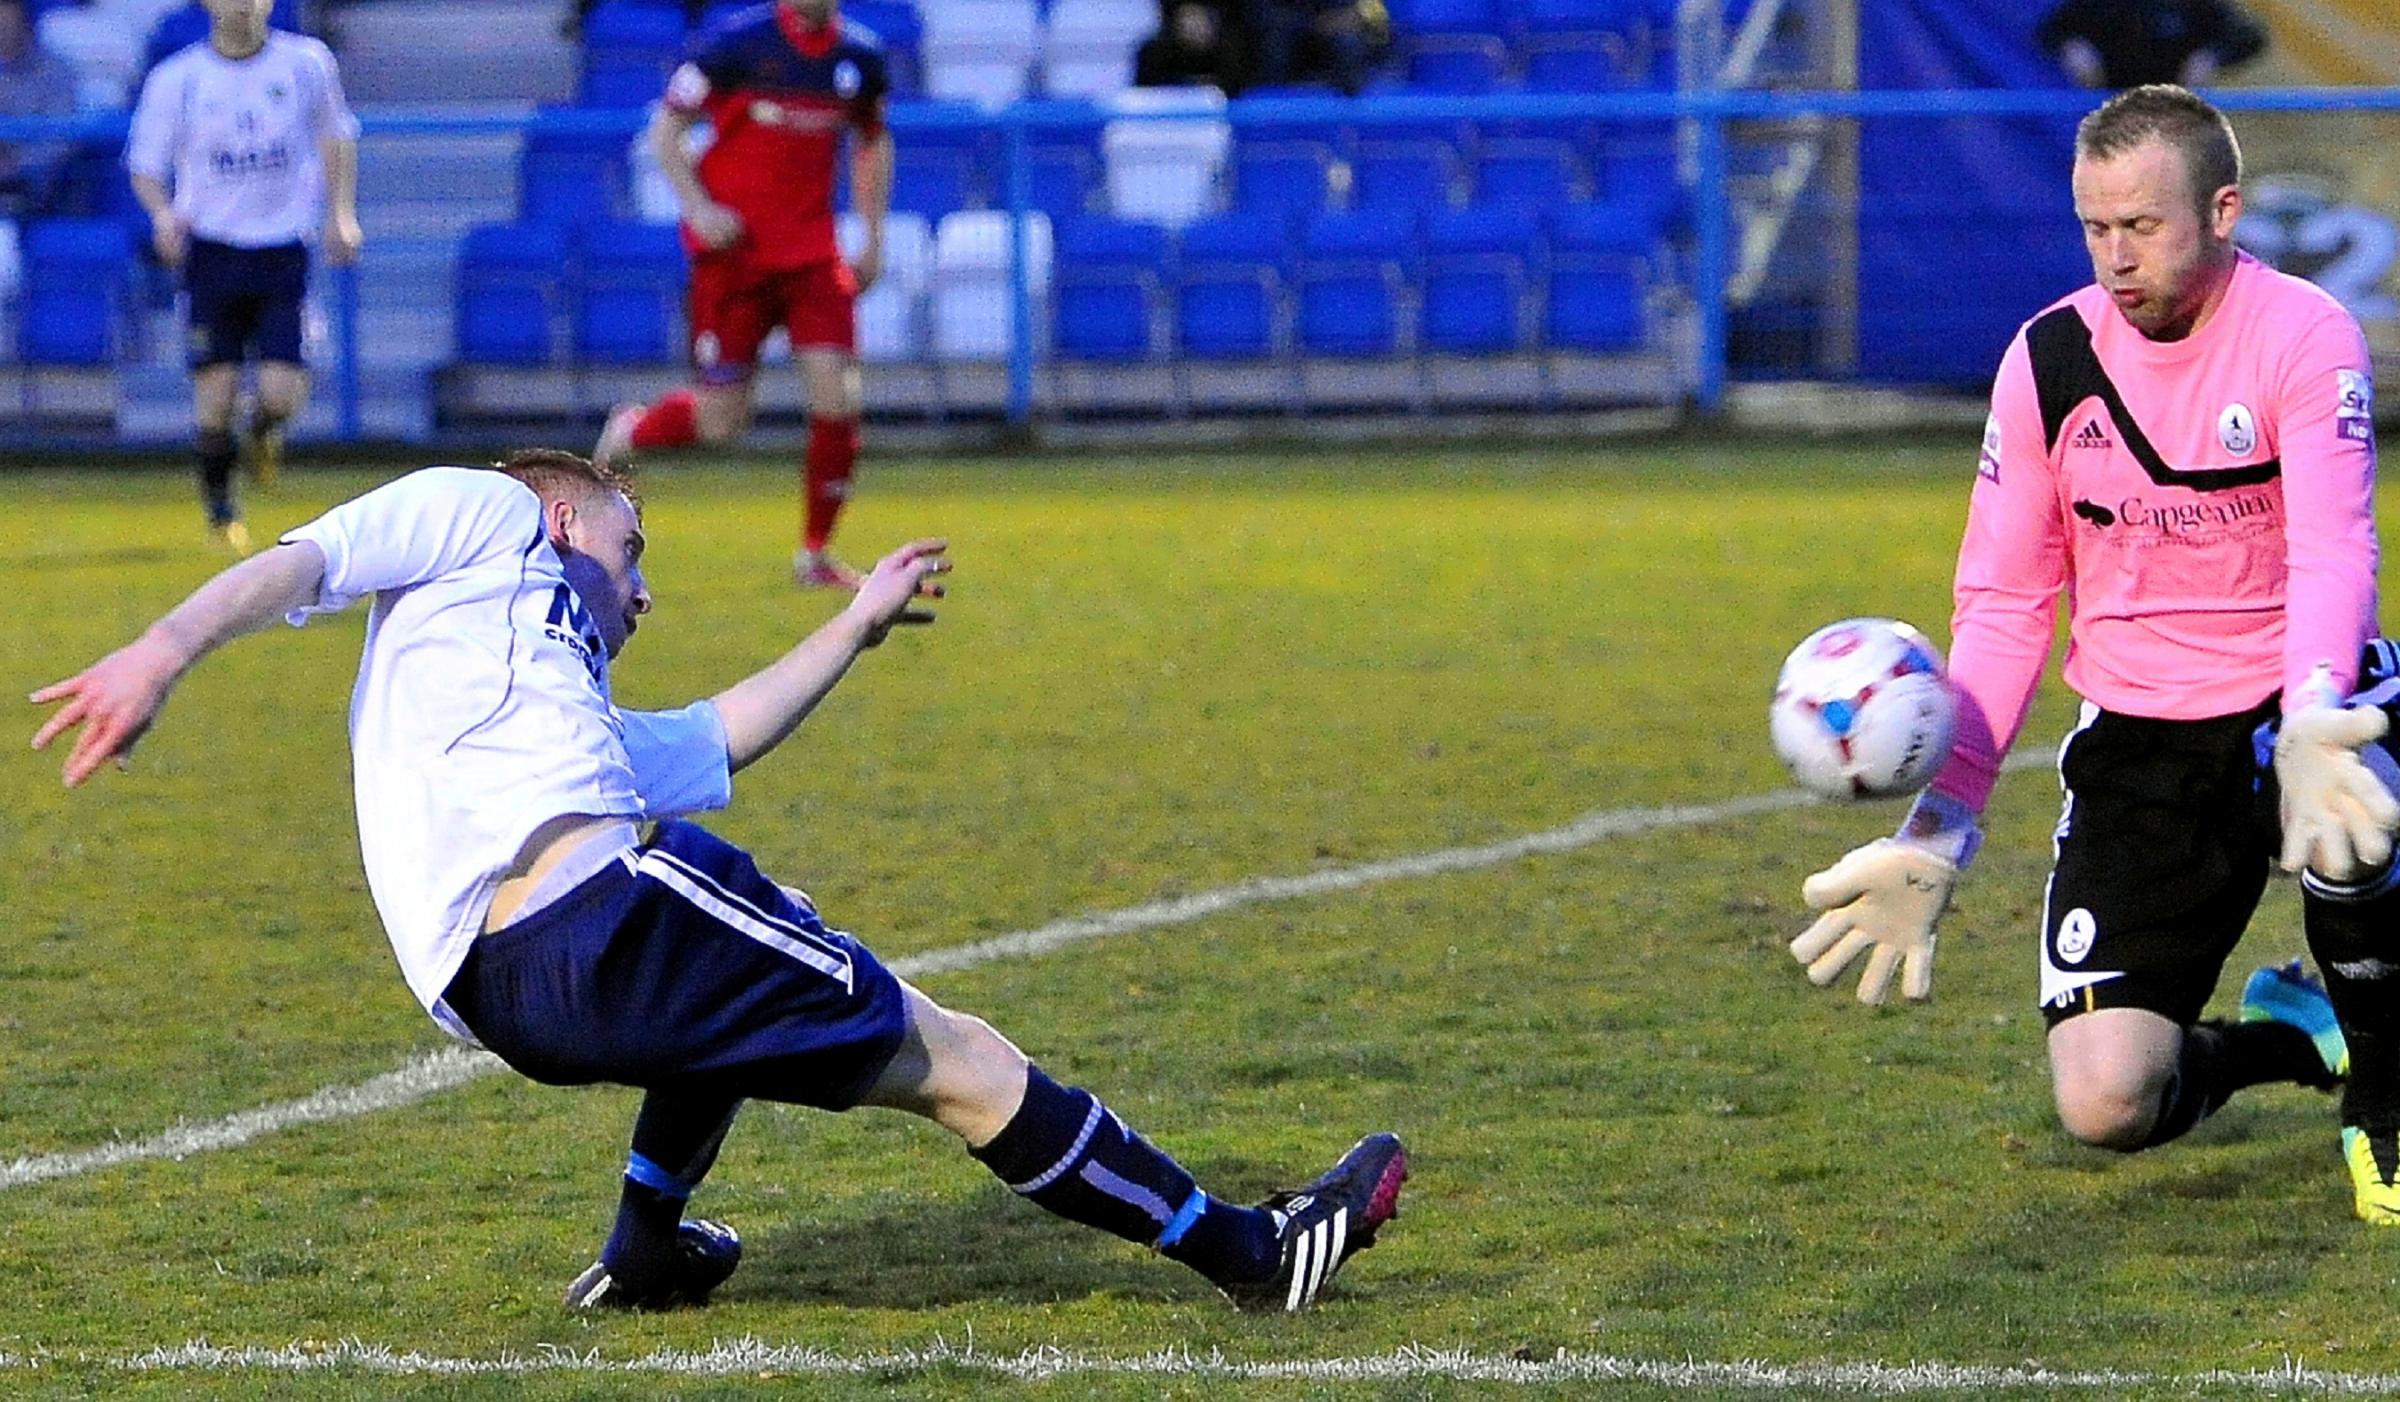 Telford trounced by Guiseley